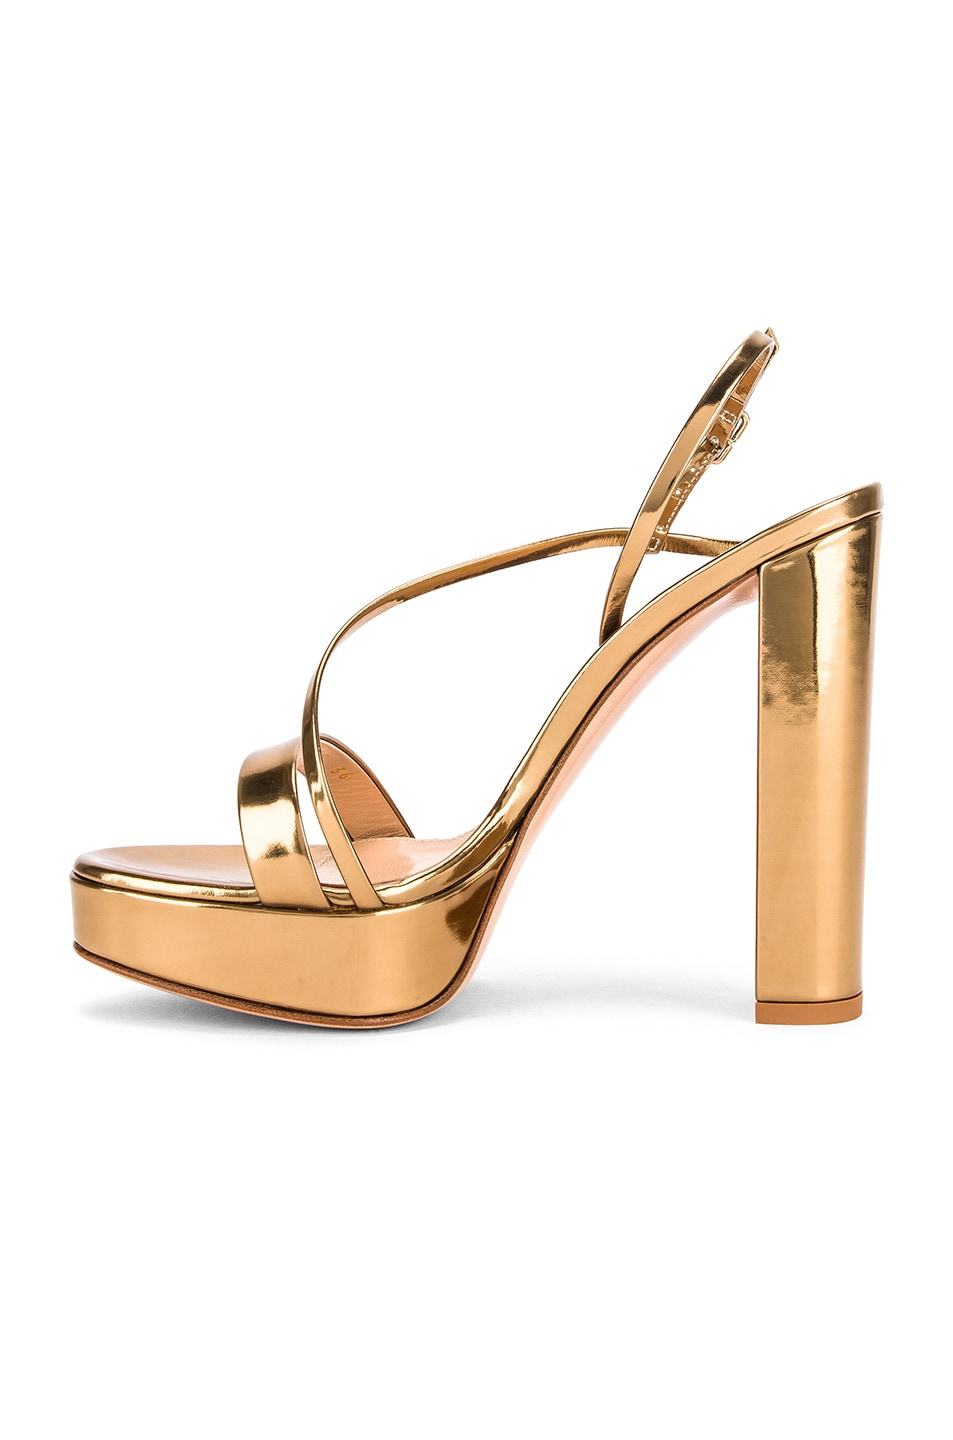 Image 5 of Gianvito Rossi Kimberly Strappy Sandal Heels in Gold